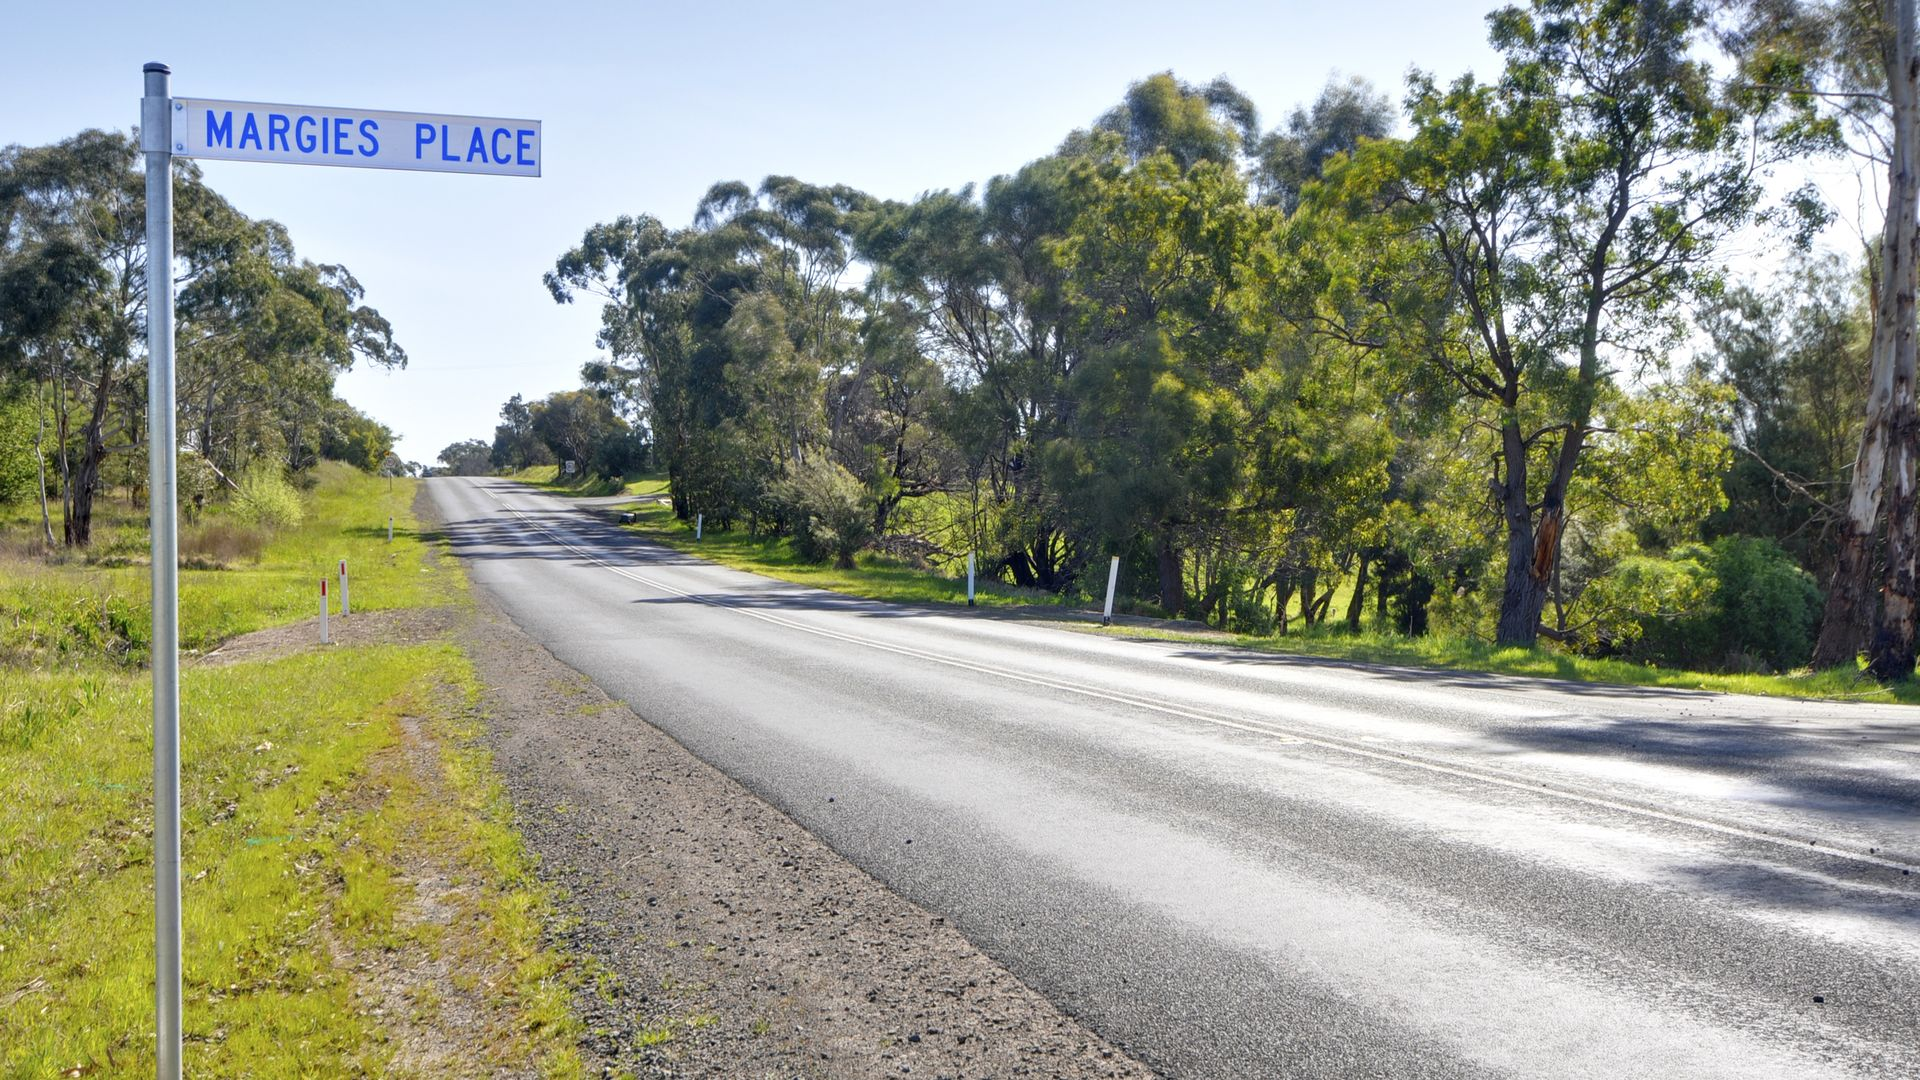 Lot 2 Margie's Place, Traralgon VIC 3844, Image 1